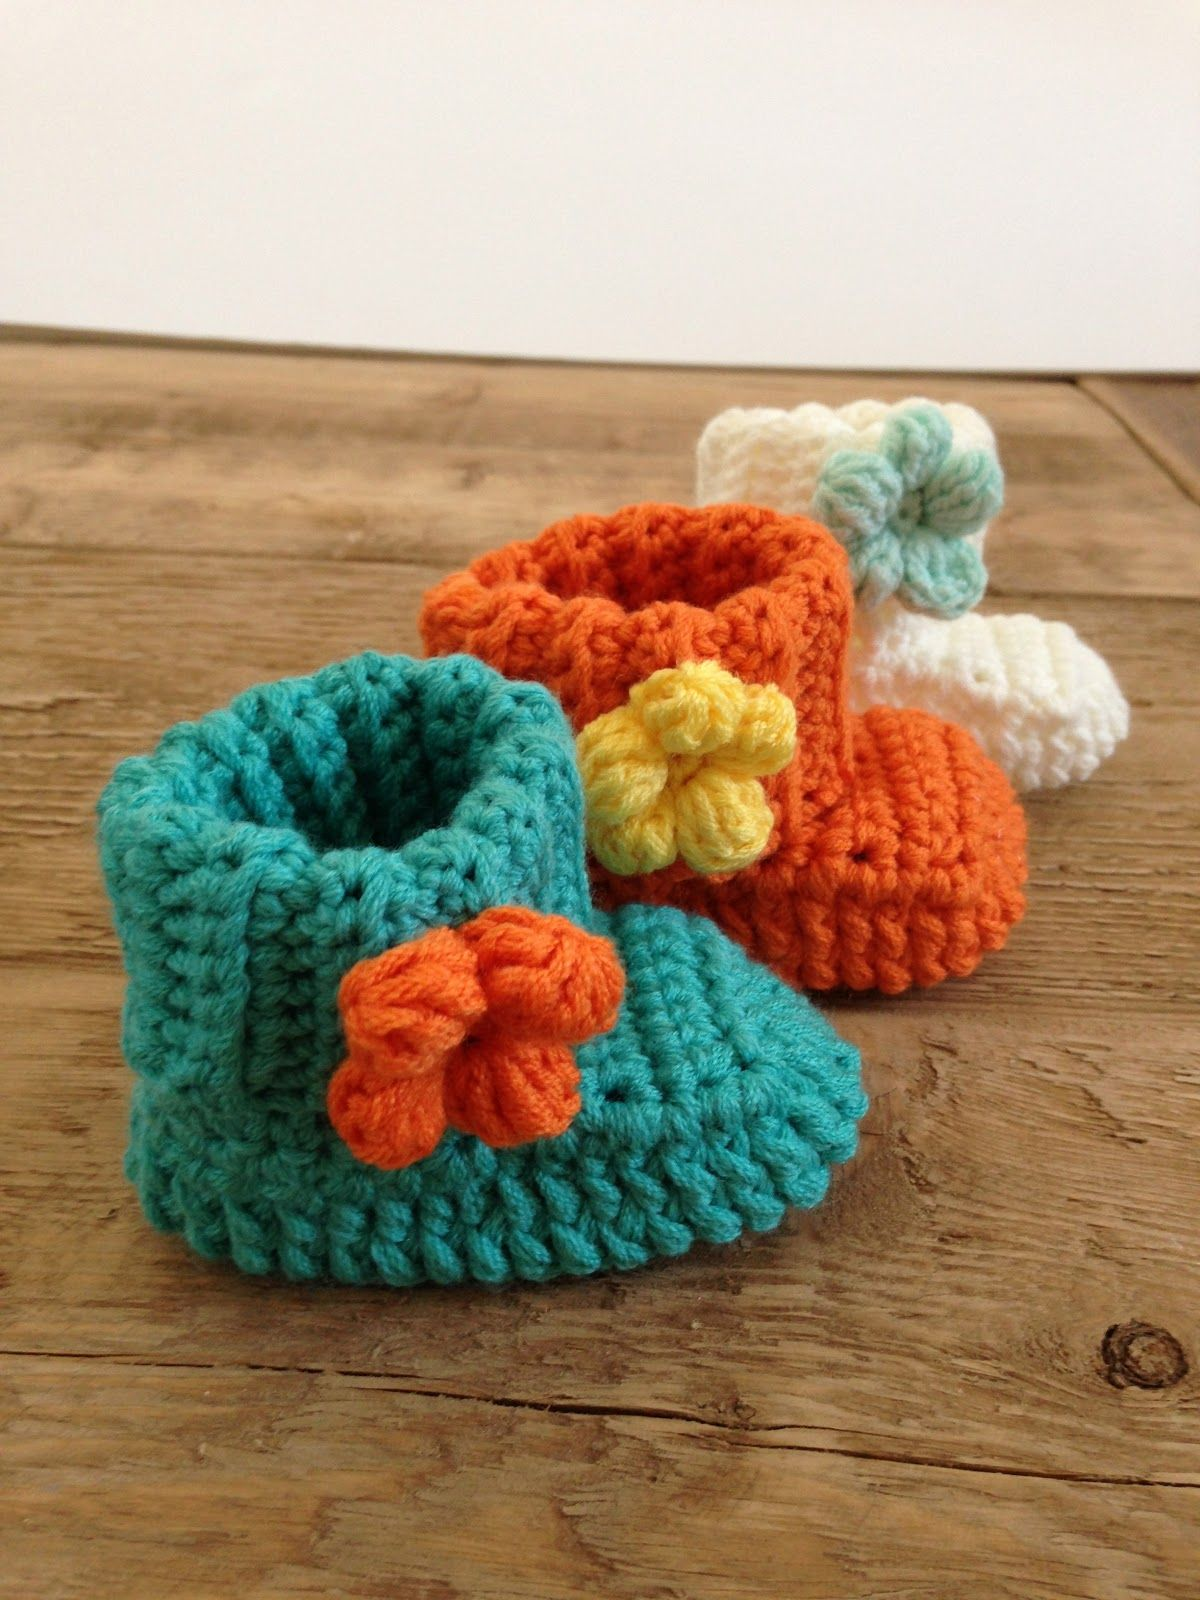 Spring Flower Baby Booties By Annoo Crochet Designs - Free Crochet ...